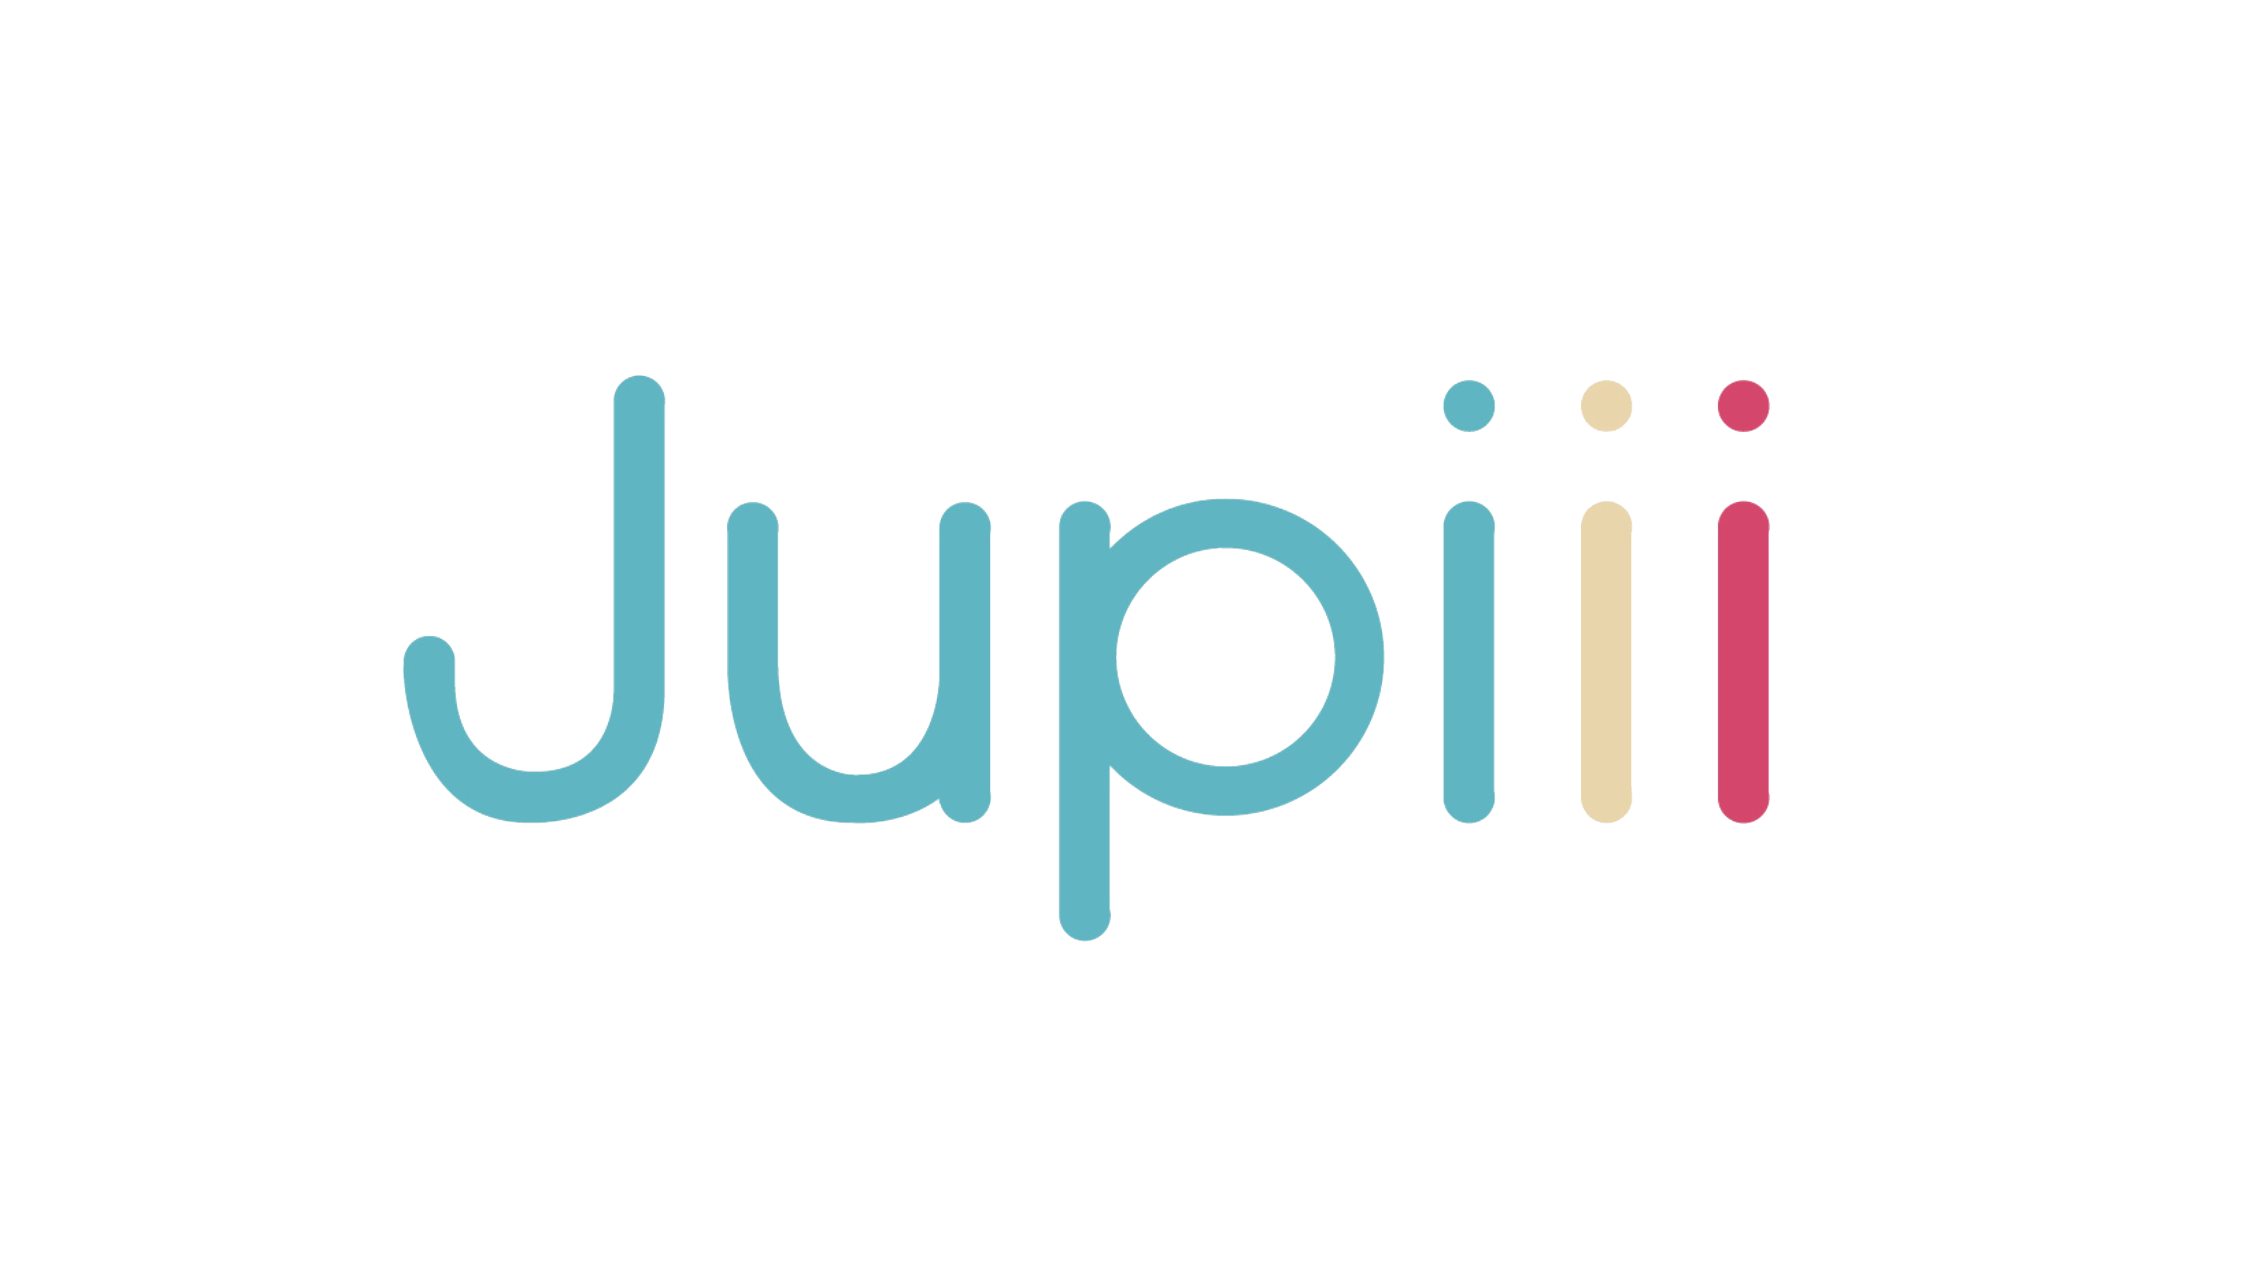 Website Jupiii